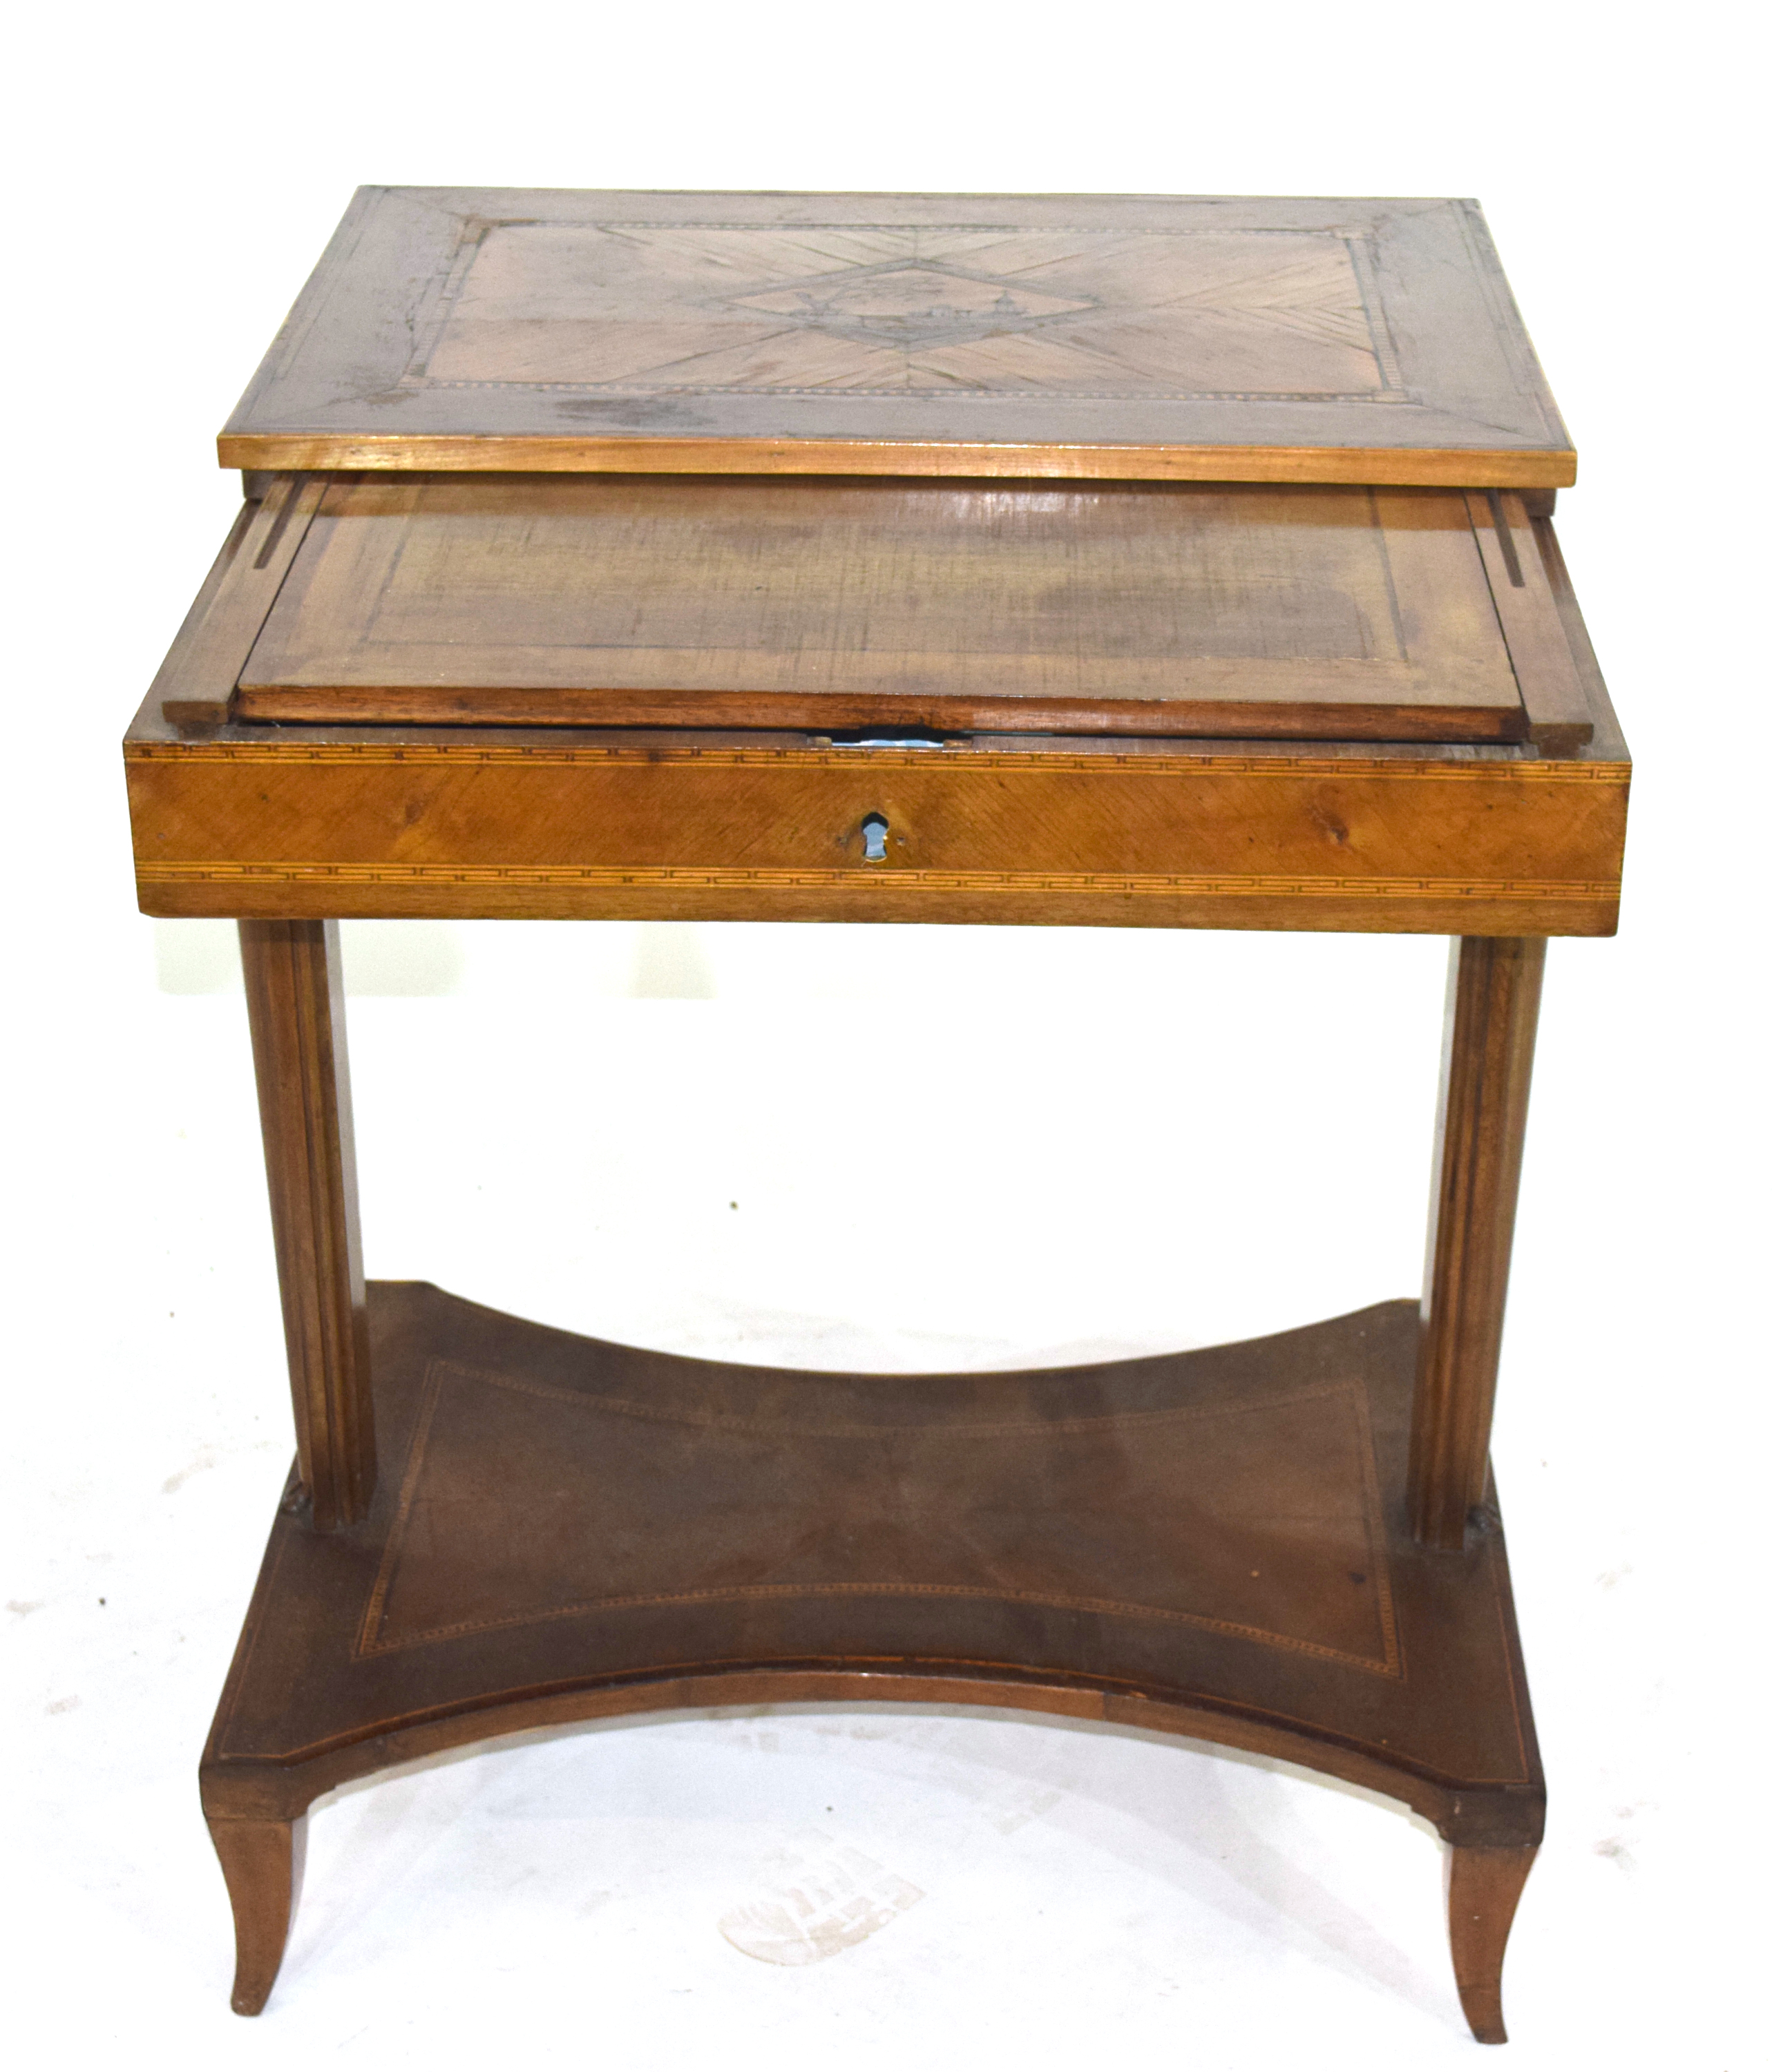 19th century Continental metamorphic desk or work table, the inlaid sliding top opening to reveal - Image 2 of 4